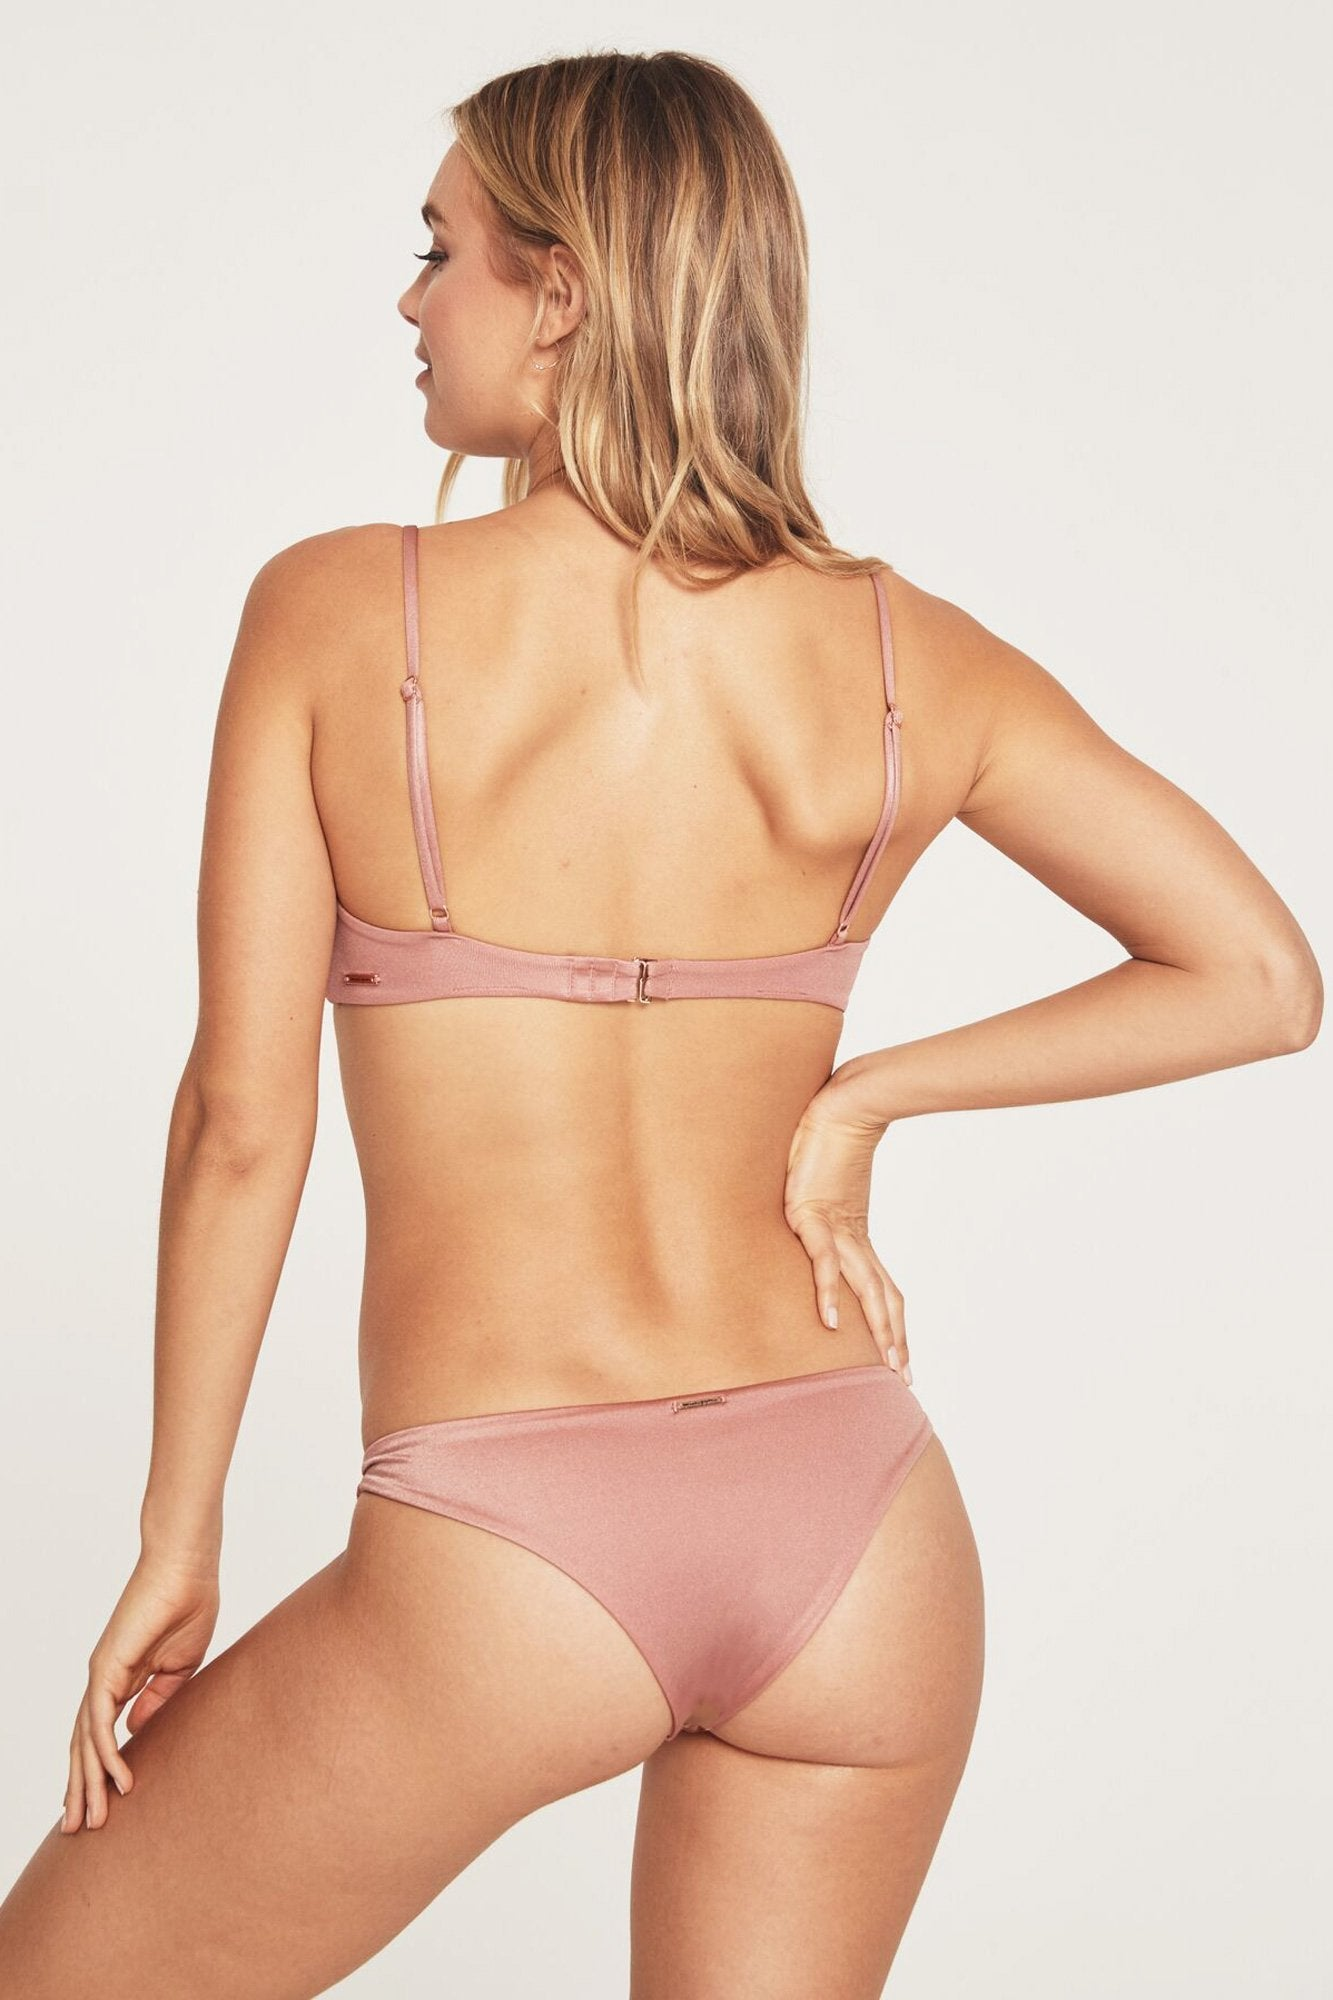 Back view of model wearing light, dusty pink low-rise bikini bottoms featuring knotted side detail and a cheeky cut.